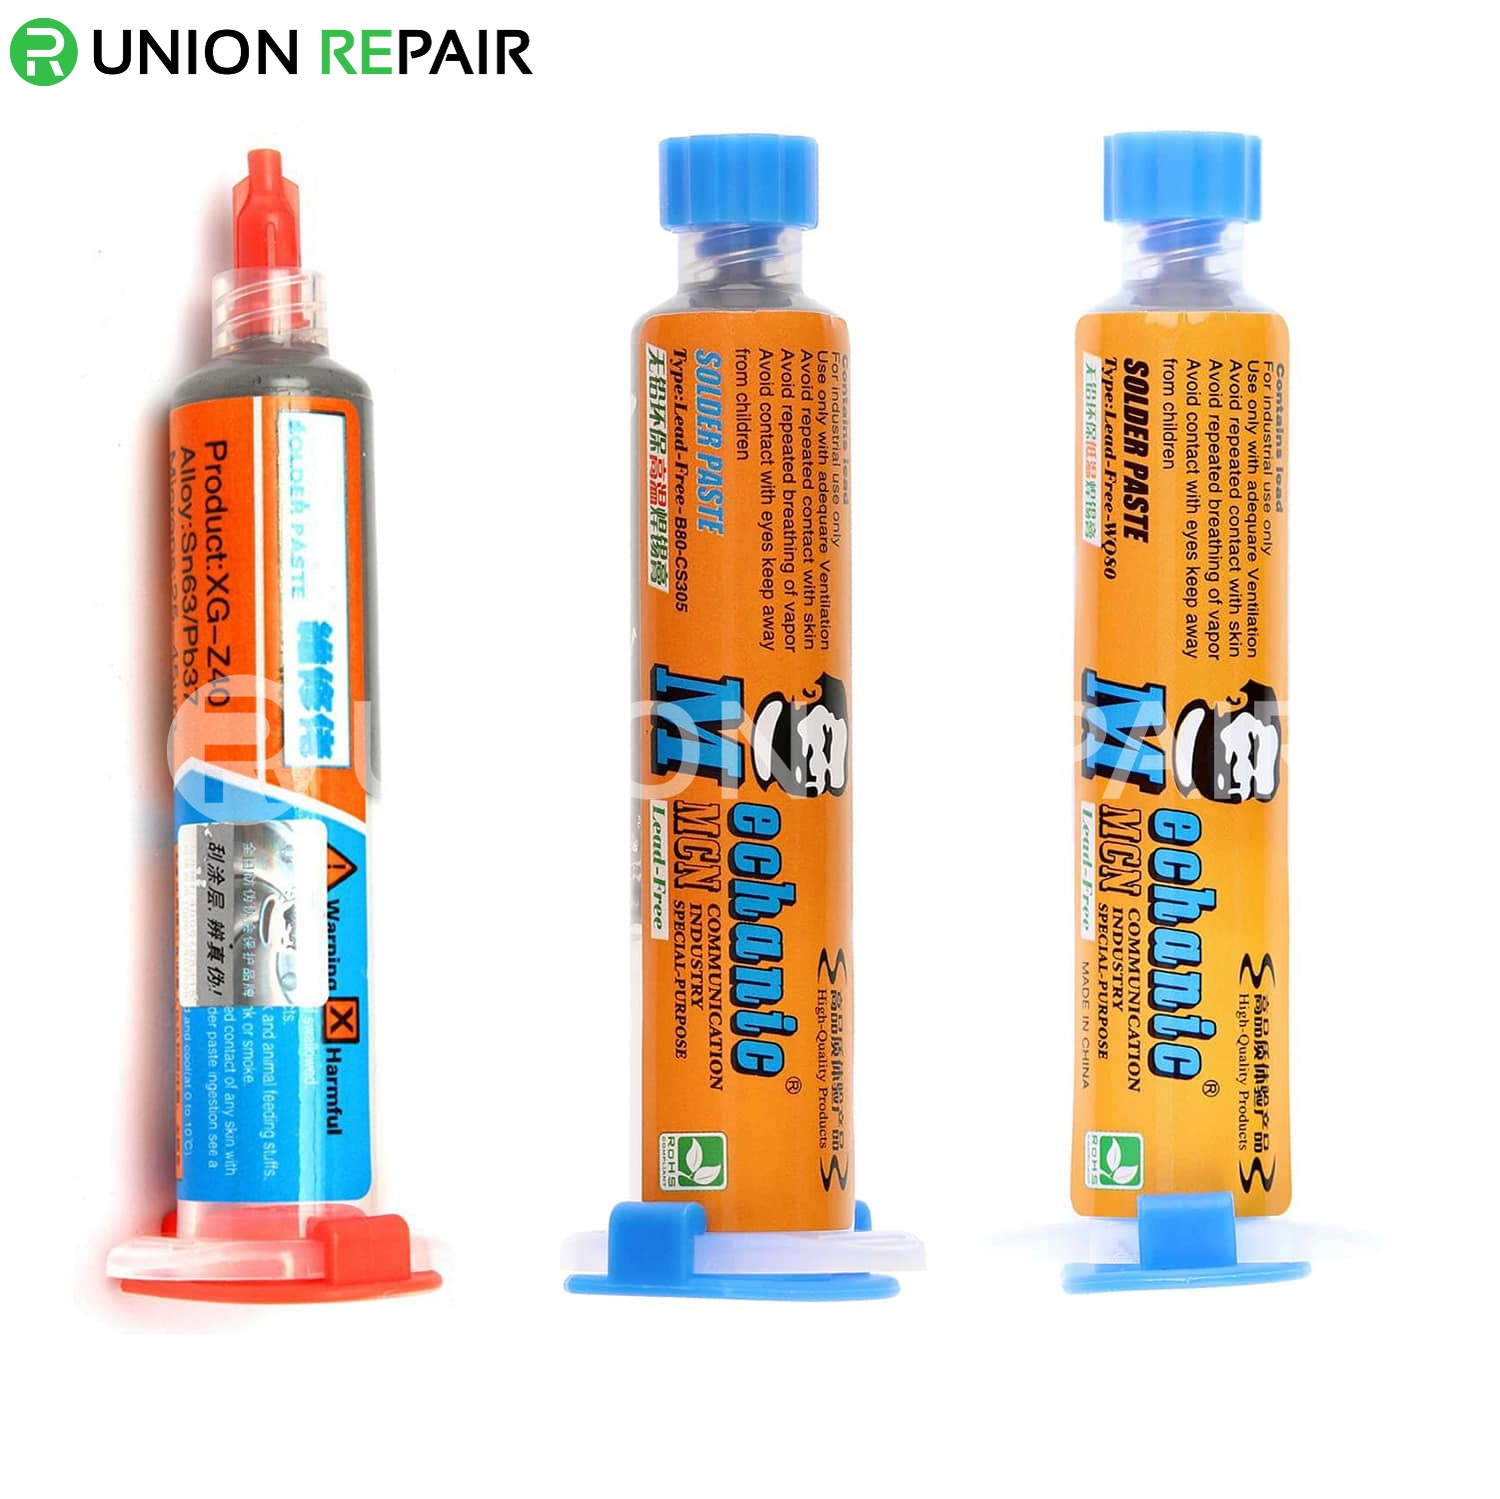 MECHANIC Lead-Free Solder Paste, Type: V6B45 138℃ 40g